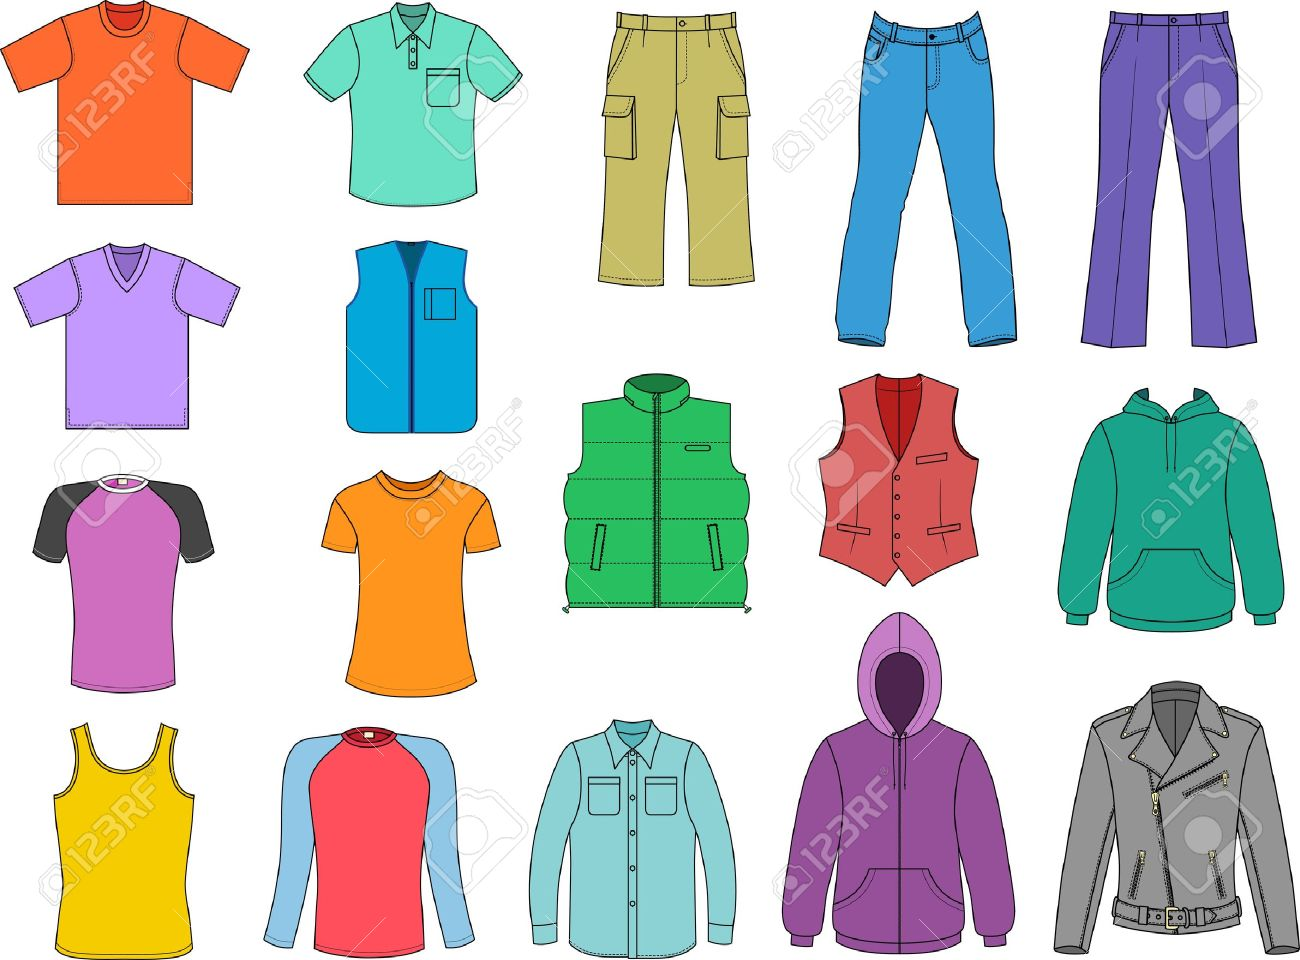 Man clothes colored collection isolalated on white - 11357909